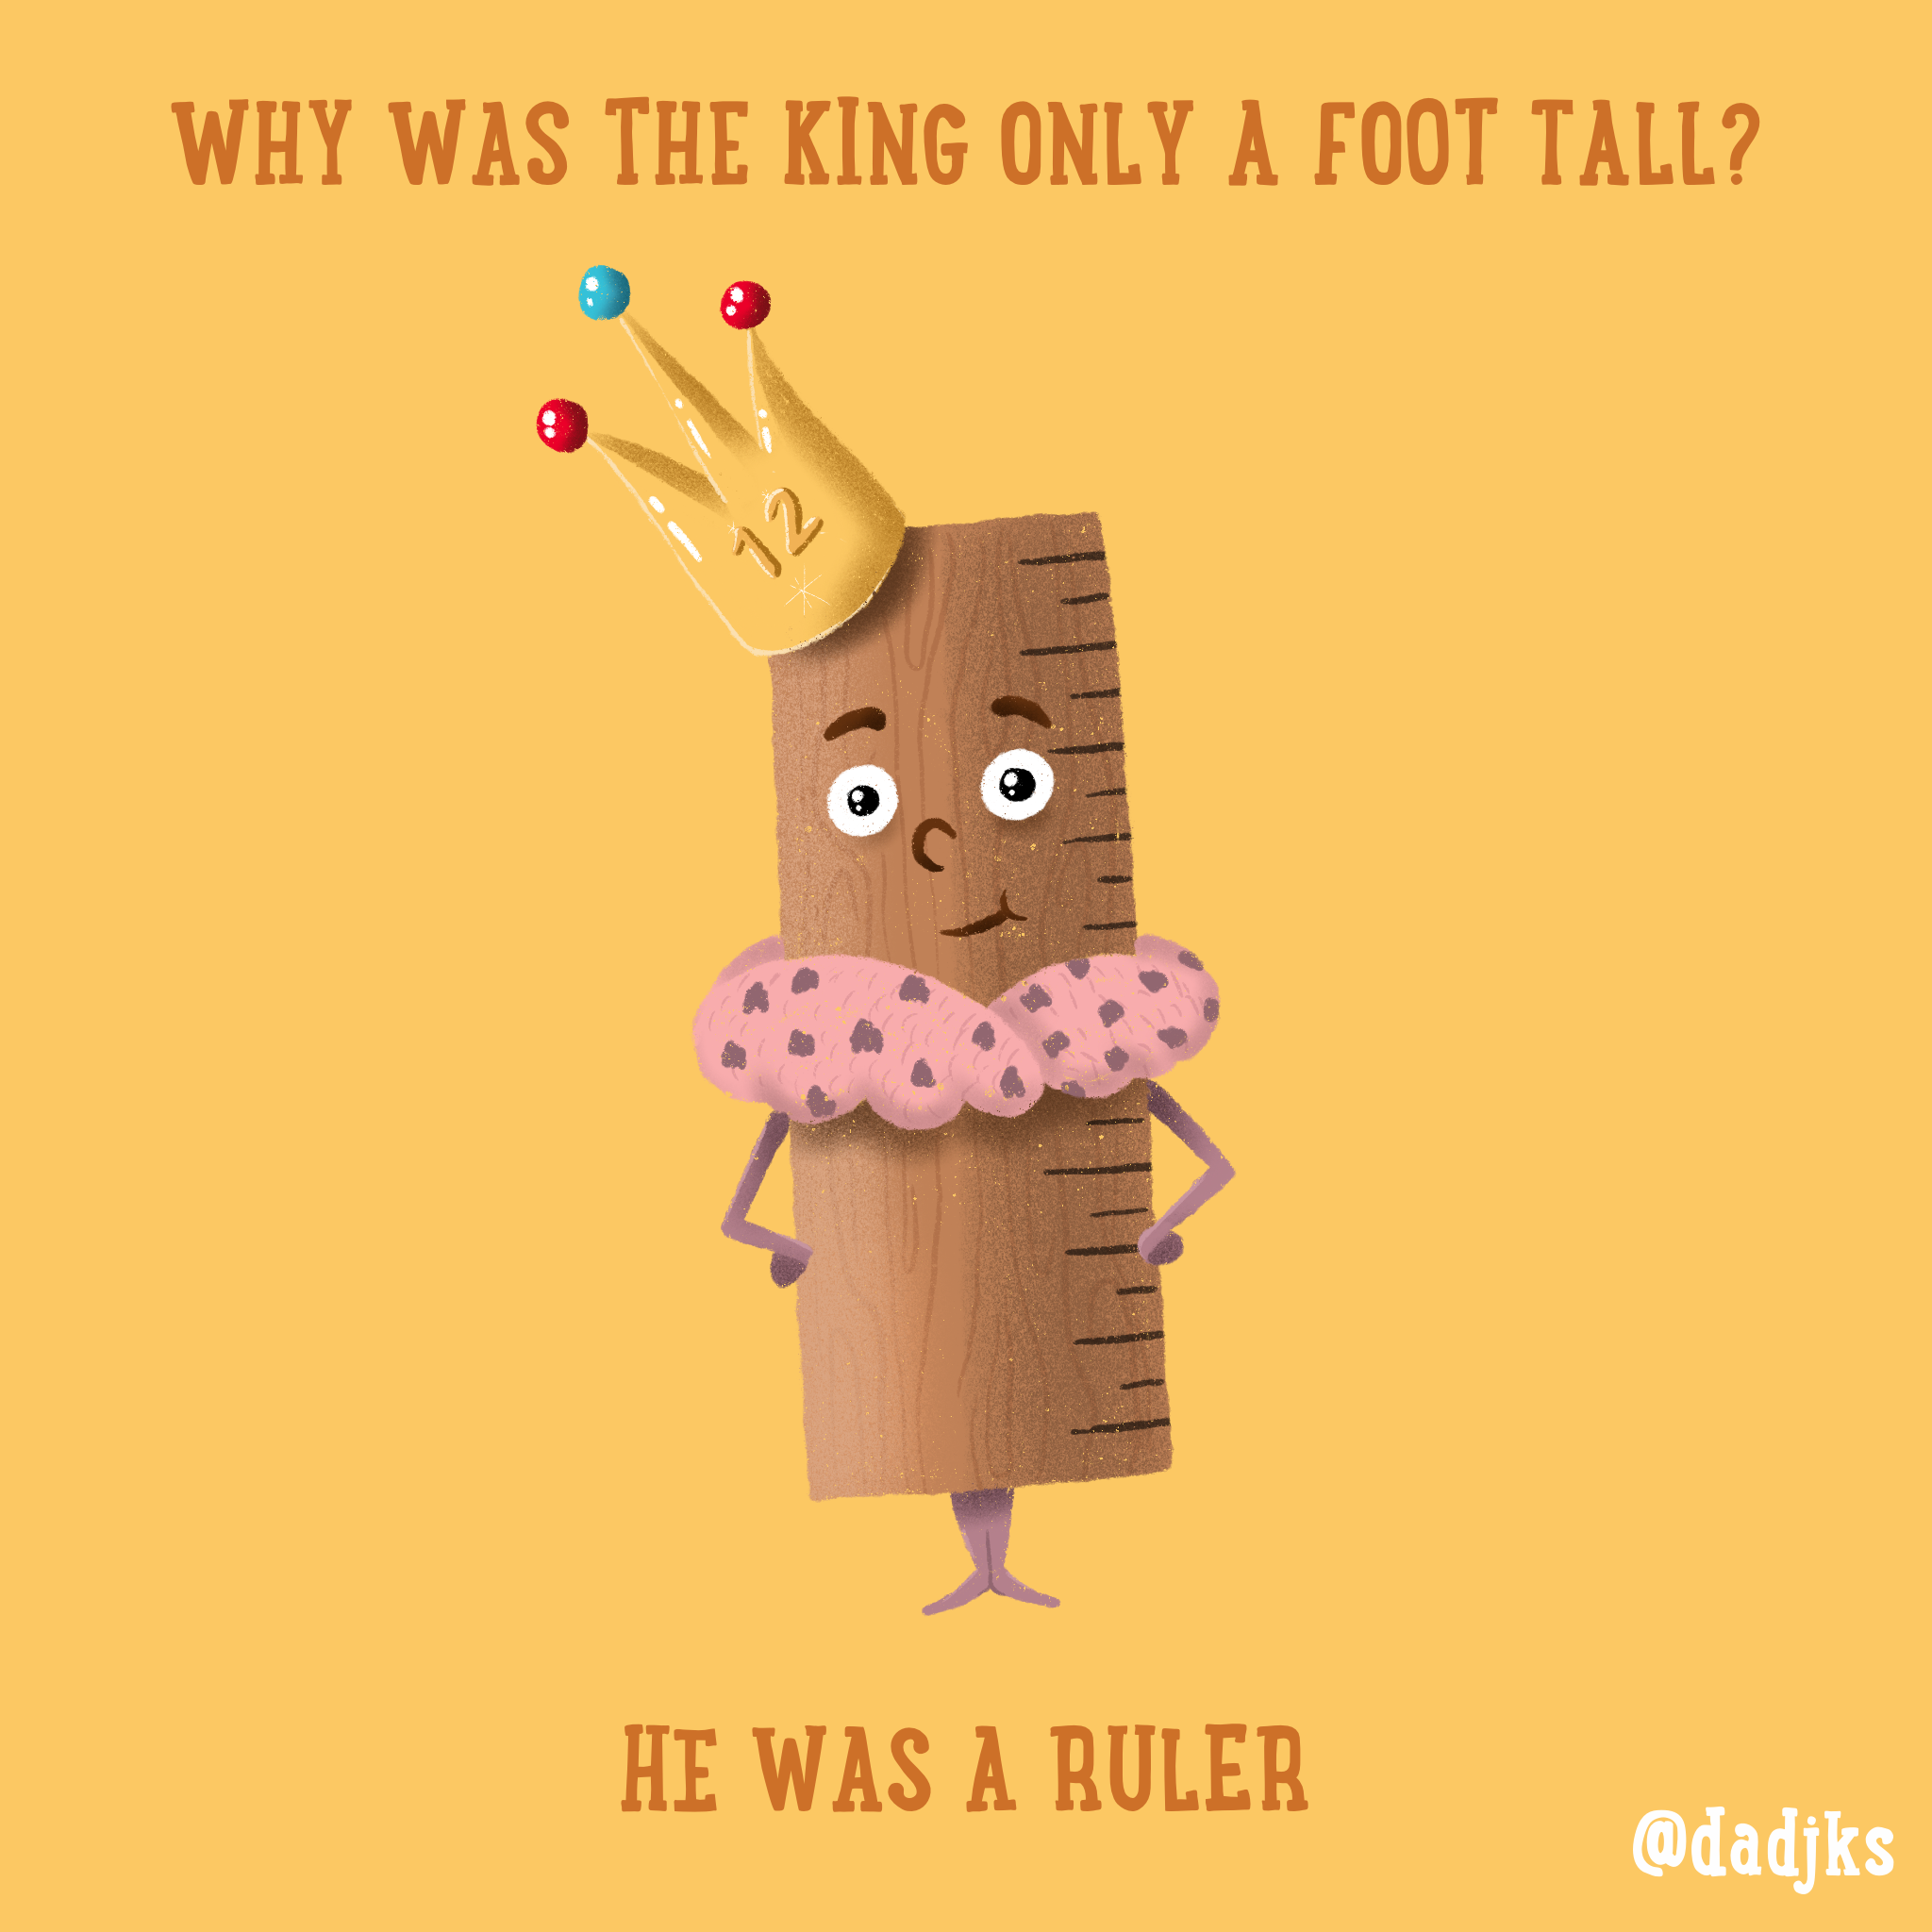 Why was the king only a foot tall? He was a ruler